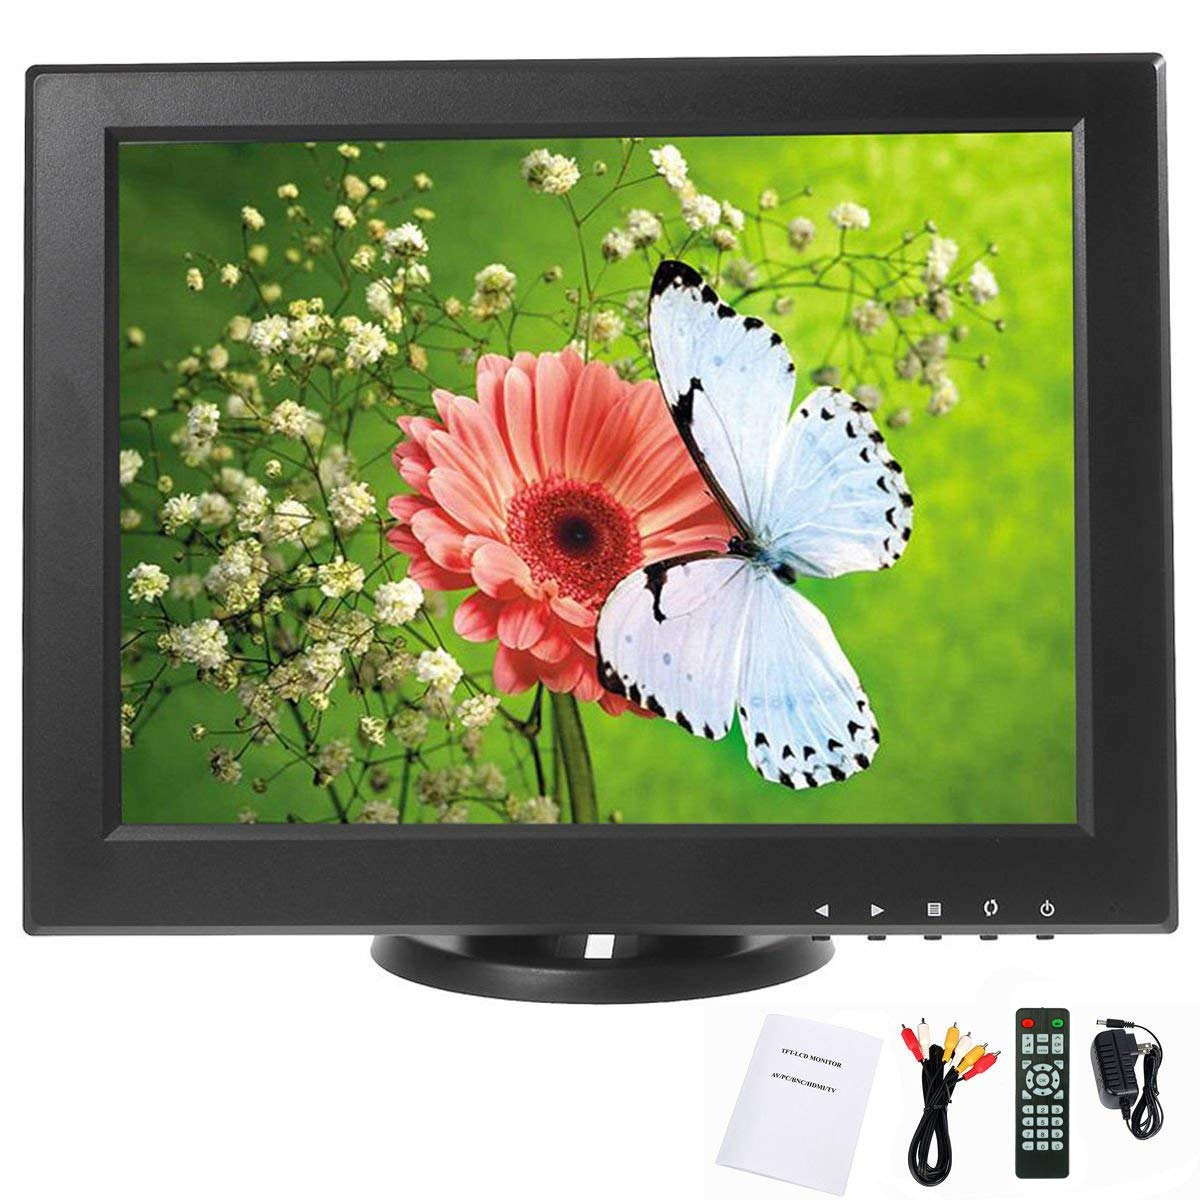 YaeCCC 12 inch LCD Security Monitor 800x600 Resolution Screen with VGA/AV/HDMI/TV Input Display for Surveillance Camera CCTV by YaeCCC